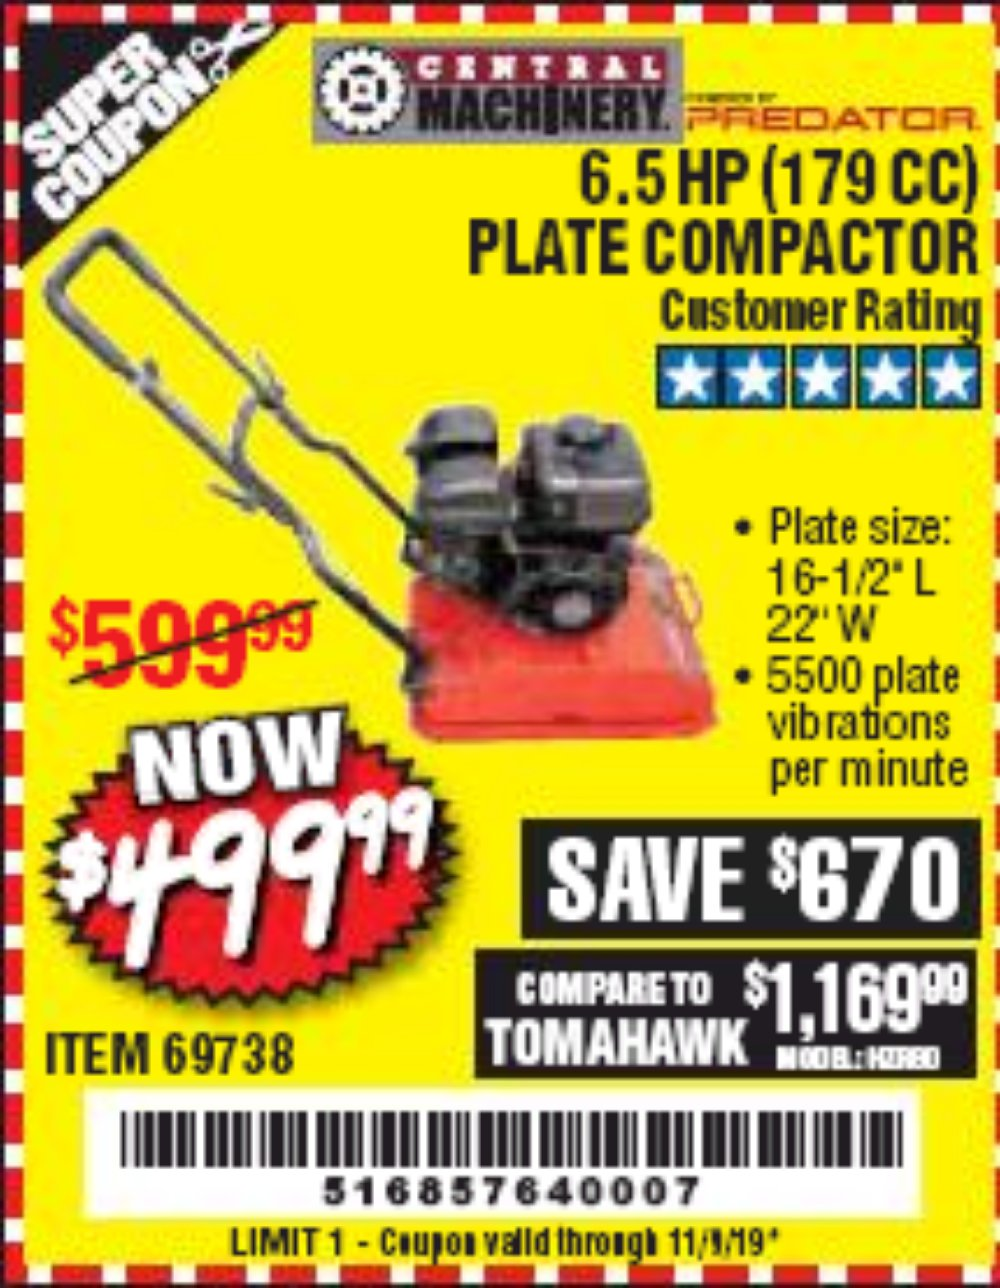 Harbor Freight Coupon, HF Coupons - 6.5 Hp Plate Compactor (179 Cc)